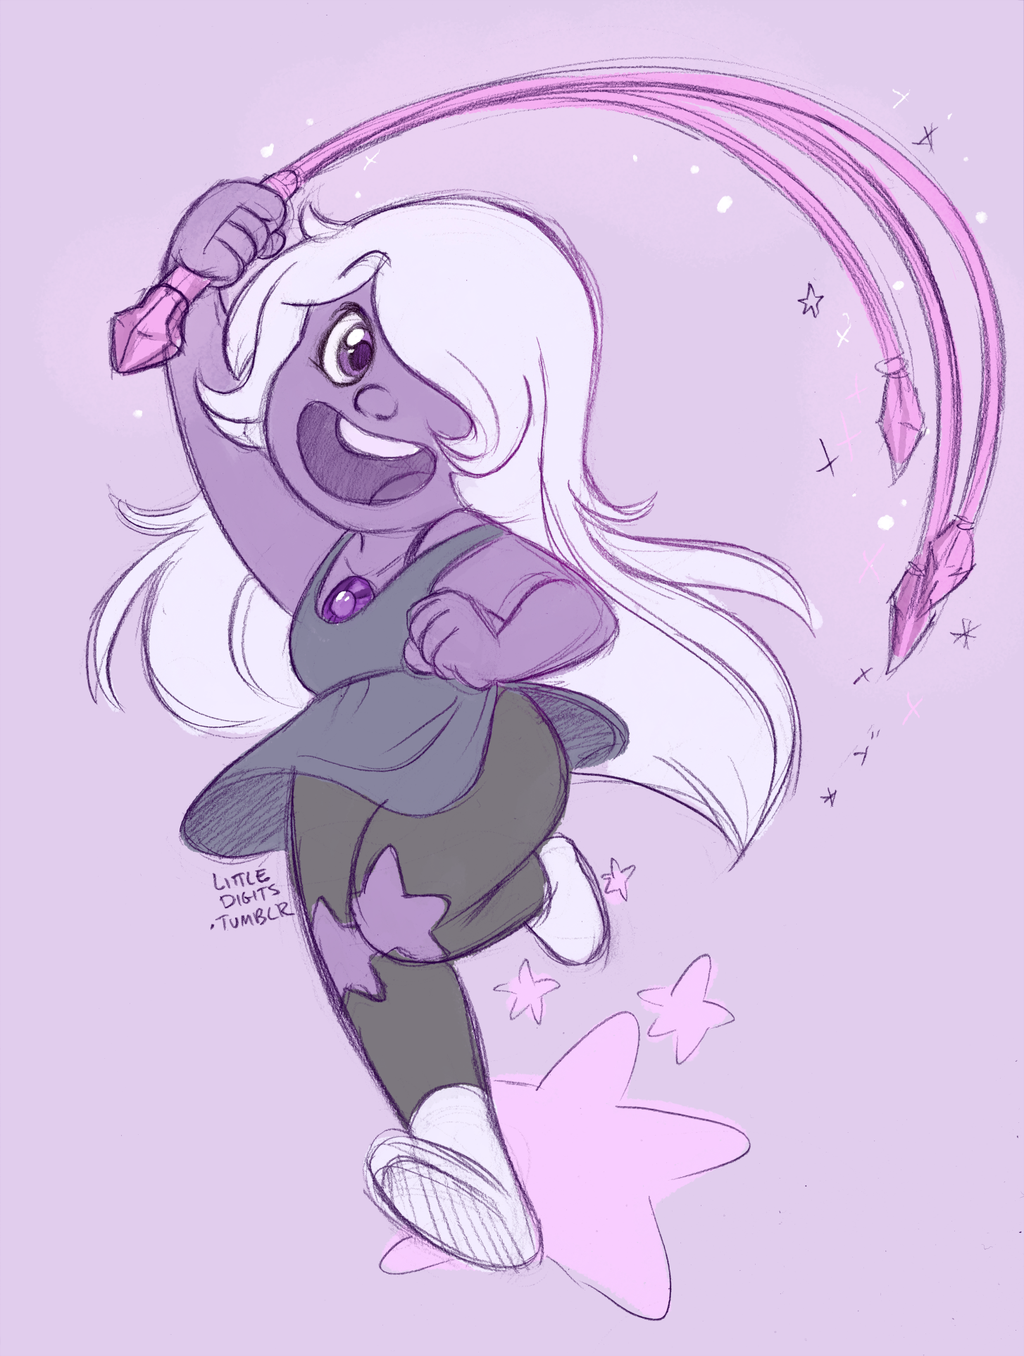 amethyst from steven universe images amethyst hd wallpaper and